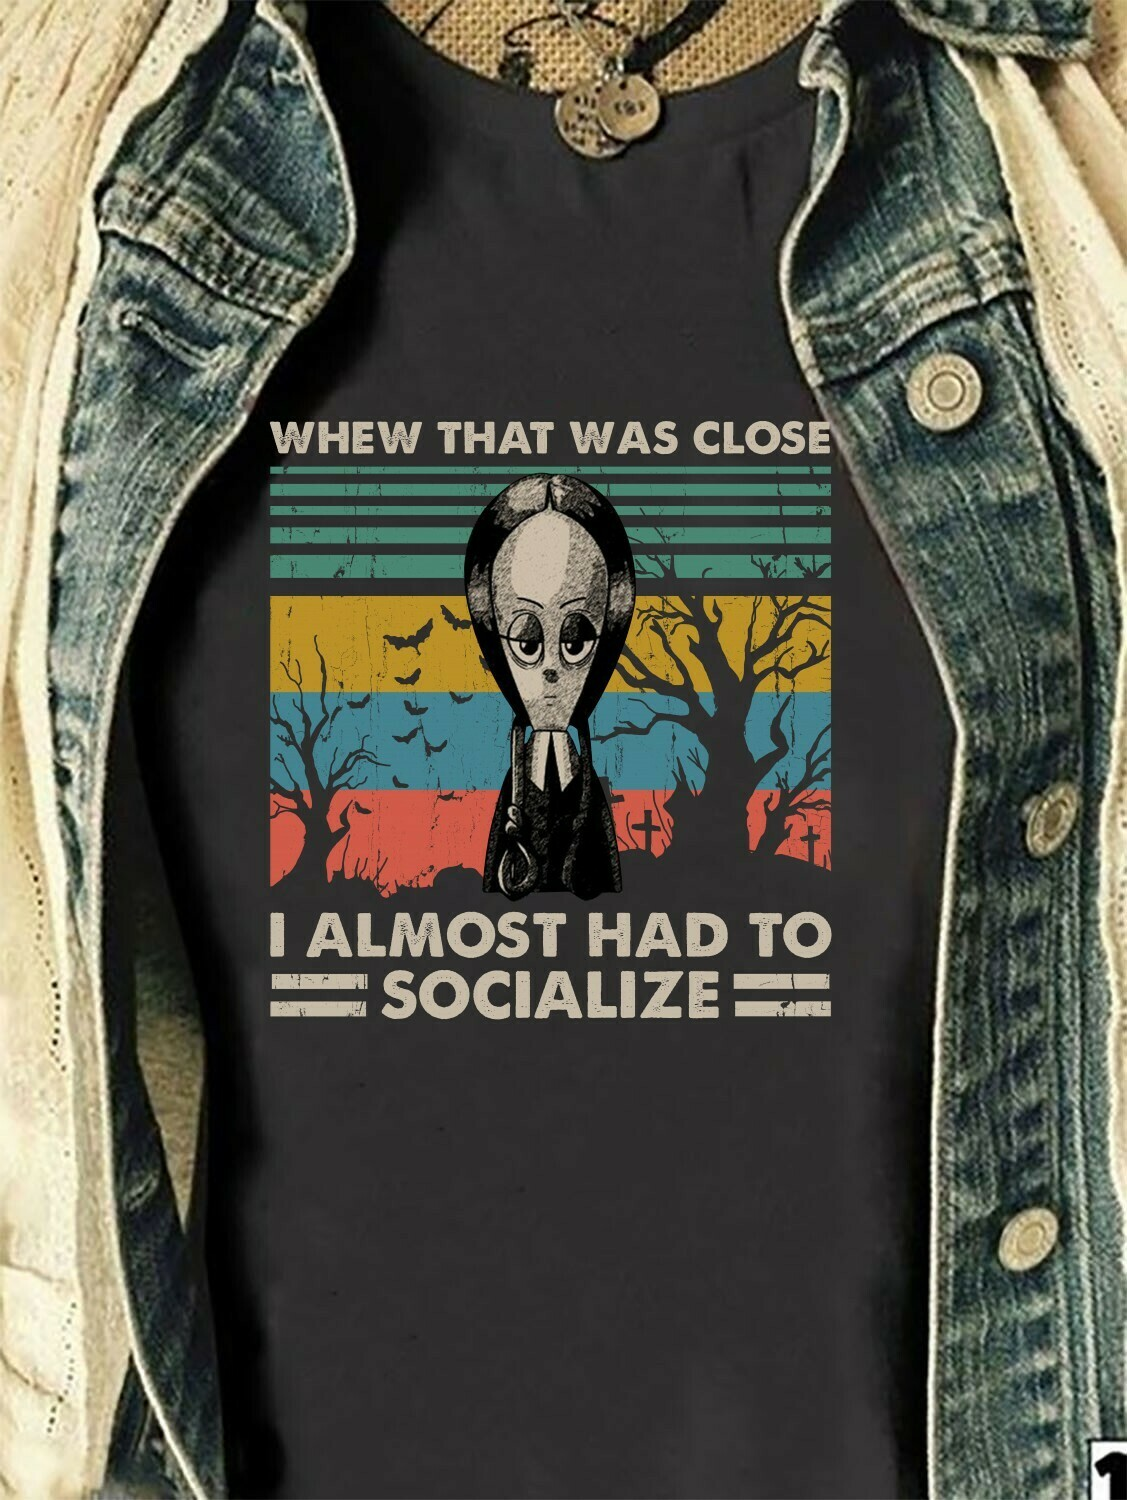 Wednesday Addams Whew That Was Close I Almost Had To Socialize Gift for Girls Women Mom Introvert Social Unisex Trending T Shirt Long Sleeve Sweatshirt Hoodie Jolly Family Gifts